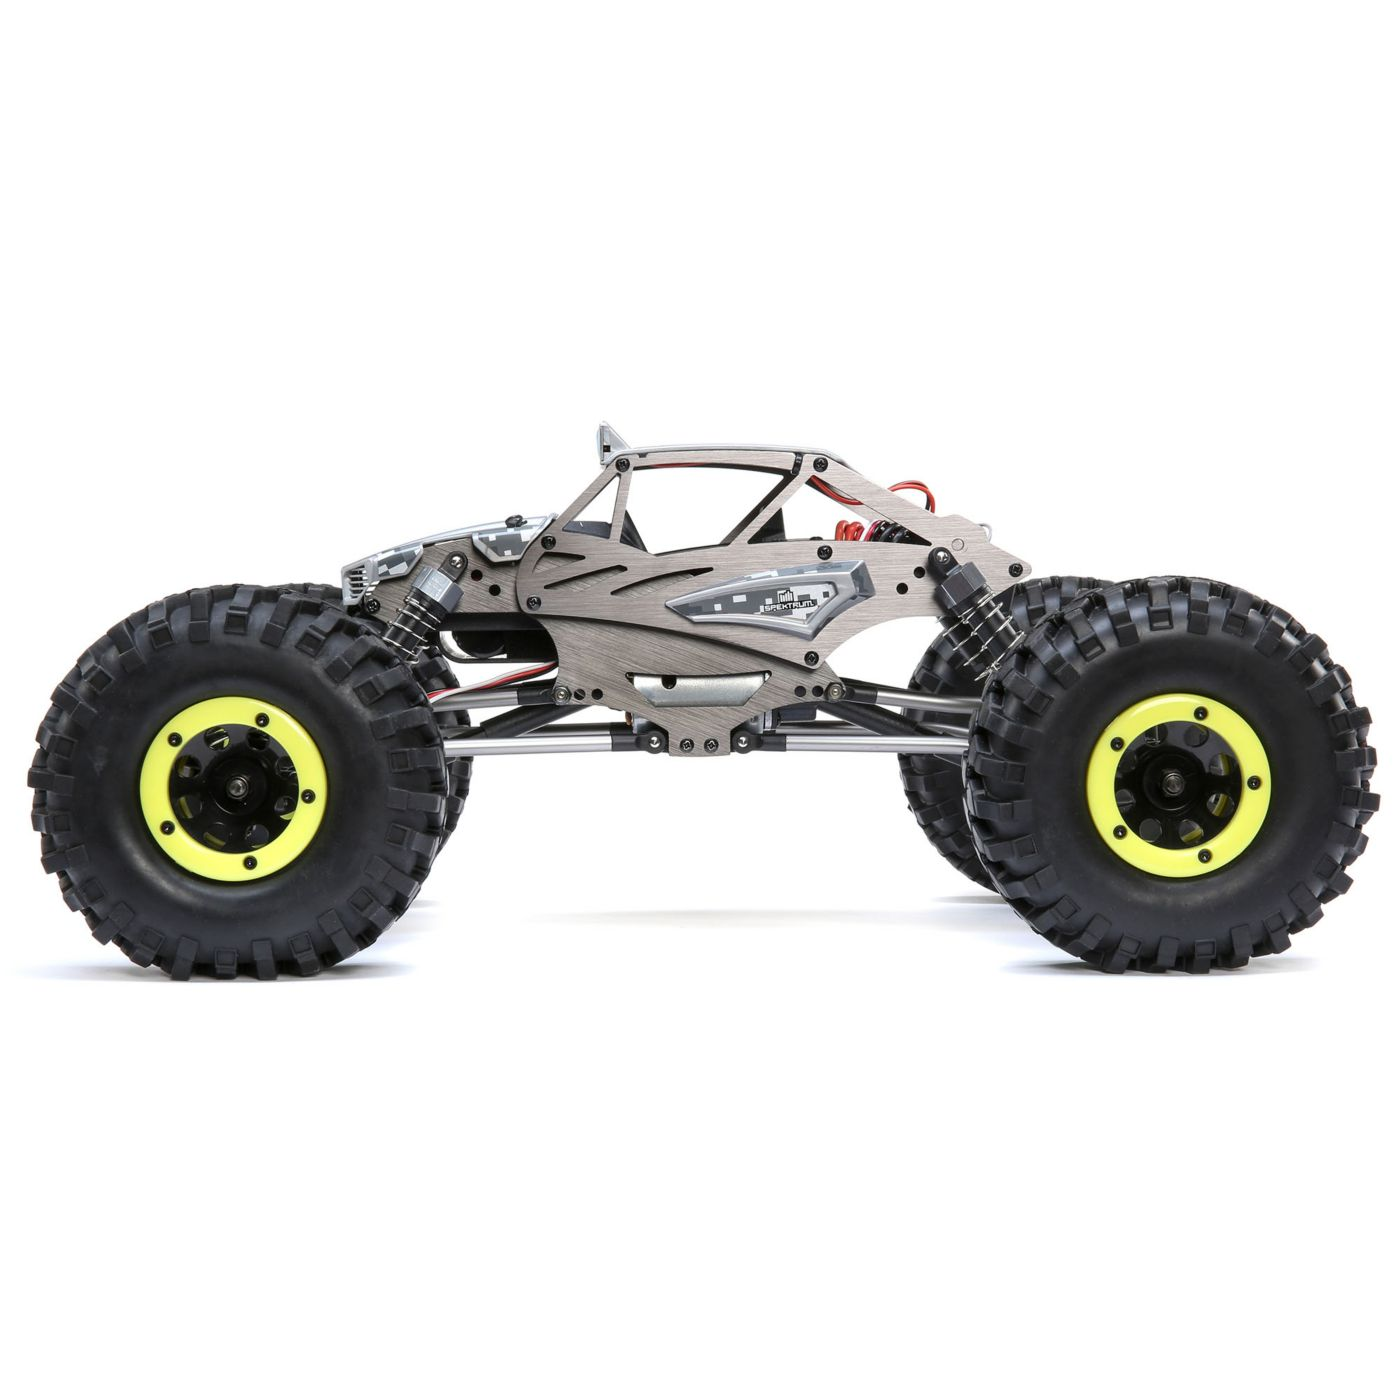 ECX Temper 1-18 GEN2 RC Crawler - Side